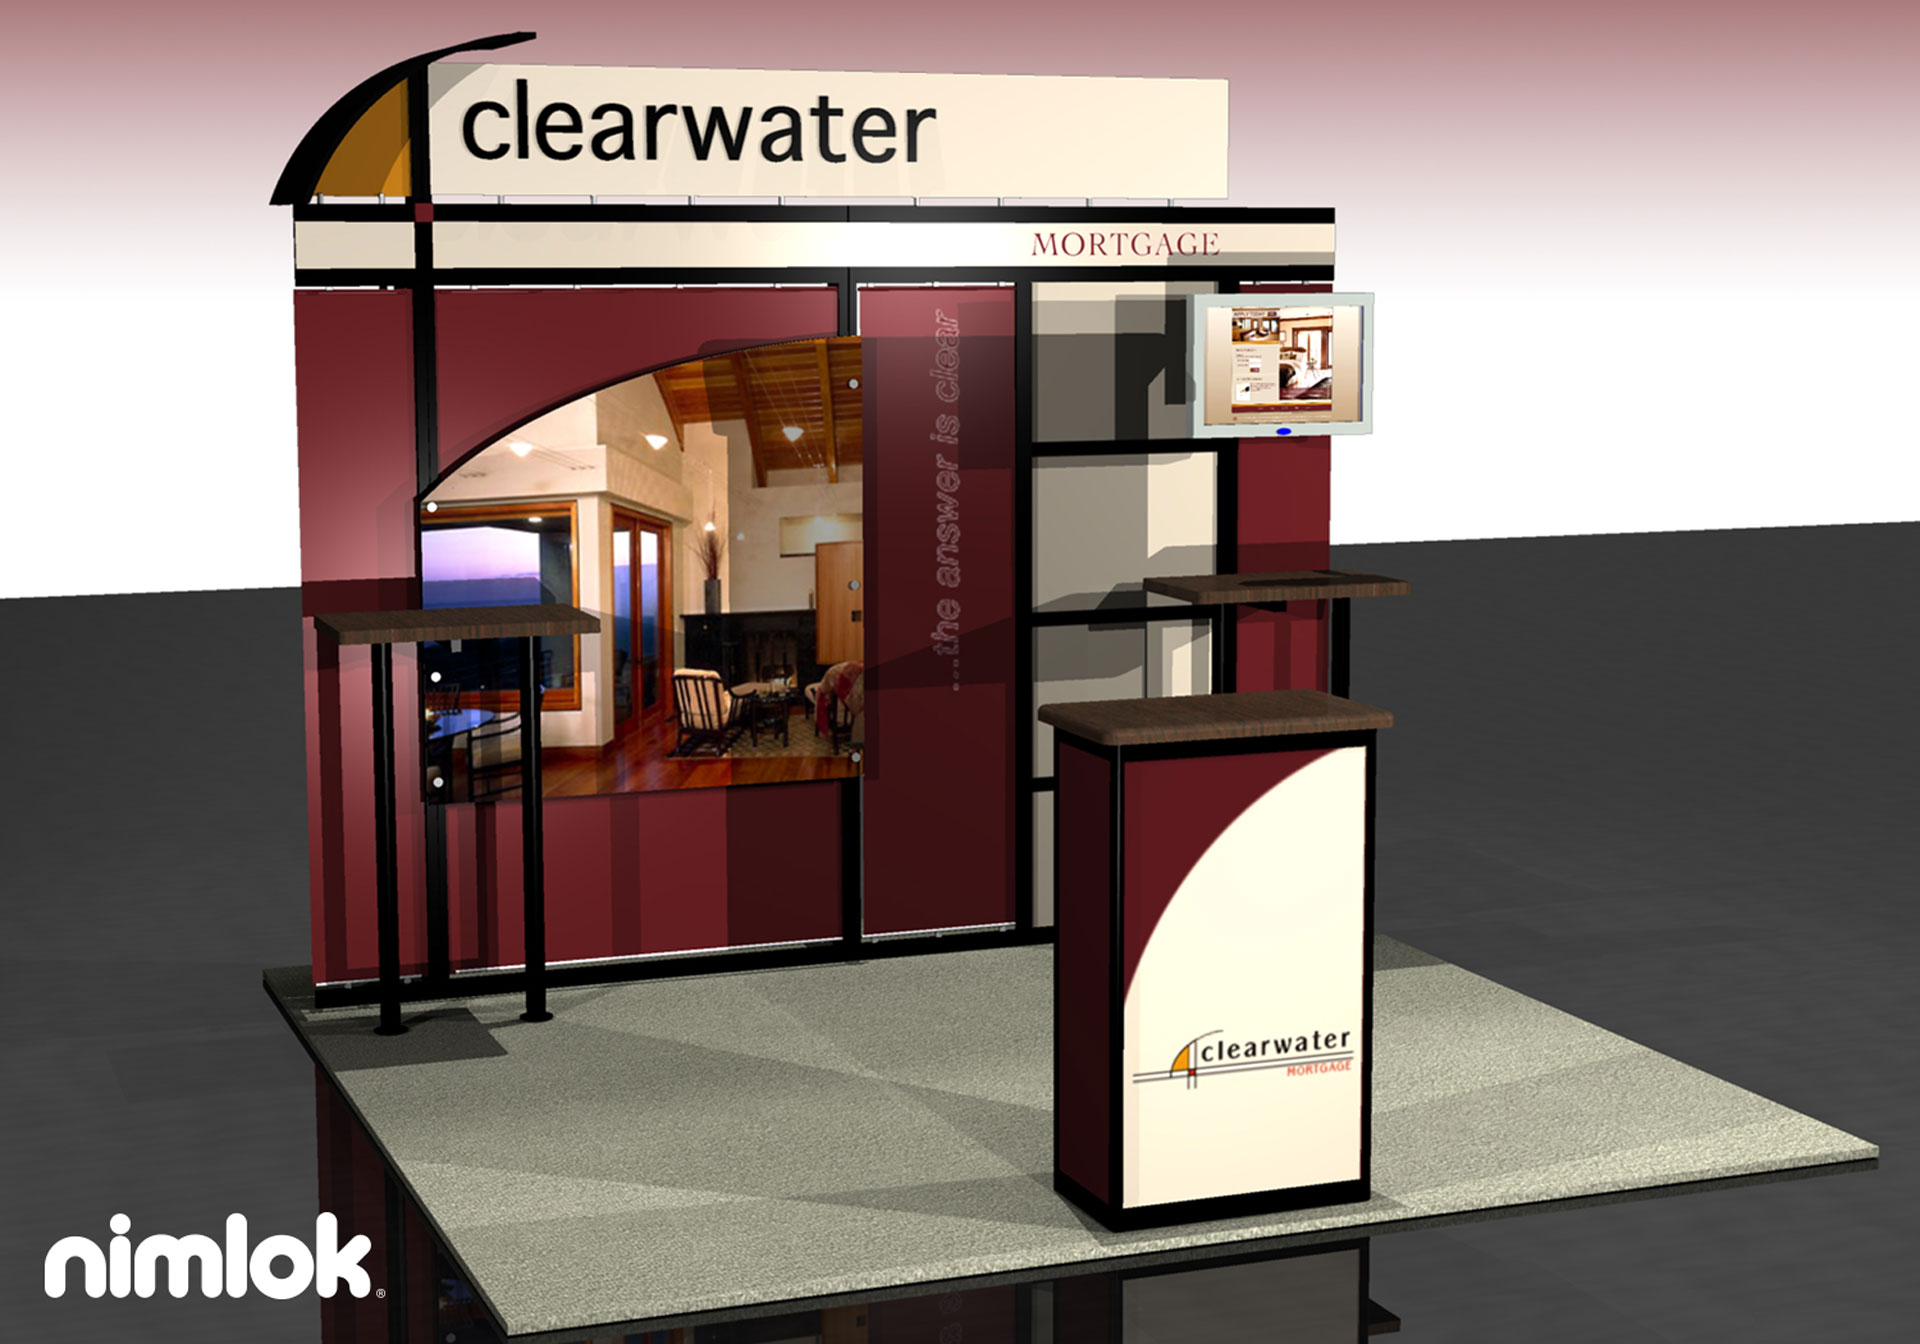 Clearwater Mortgage - 10x10 - trade show exhibit